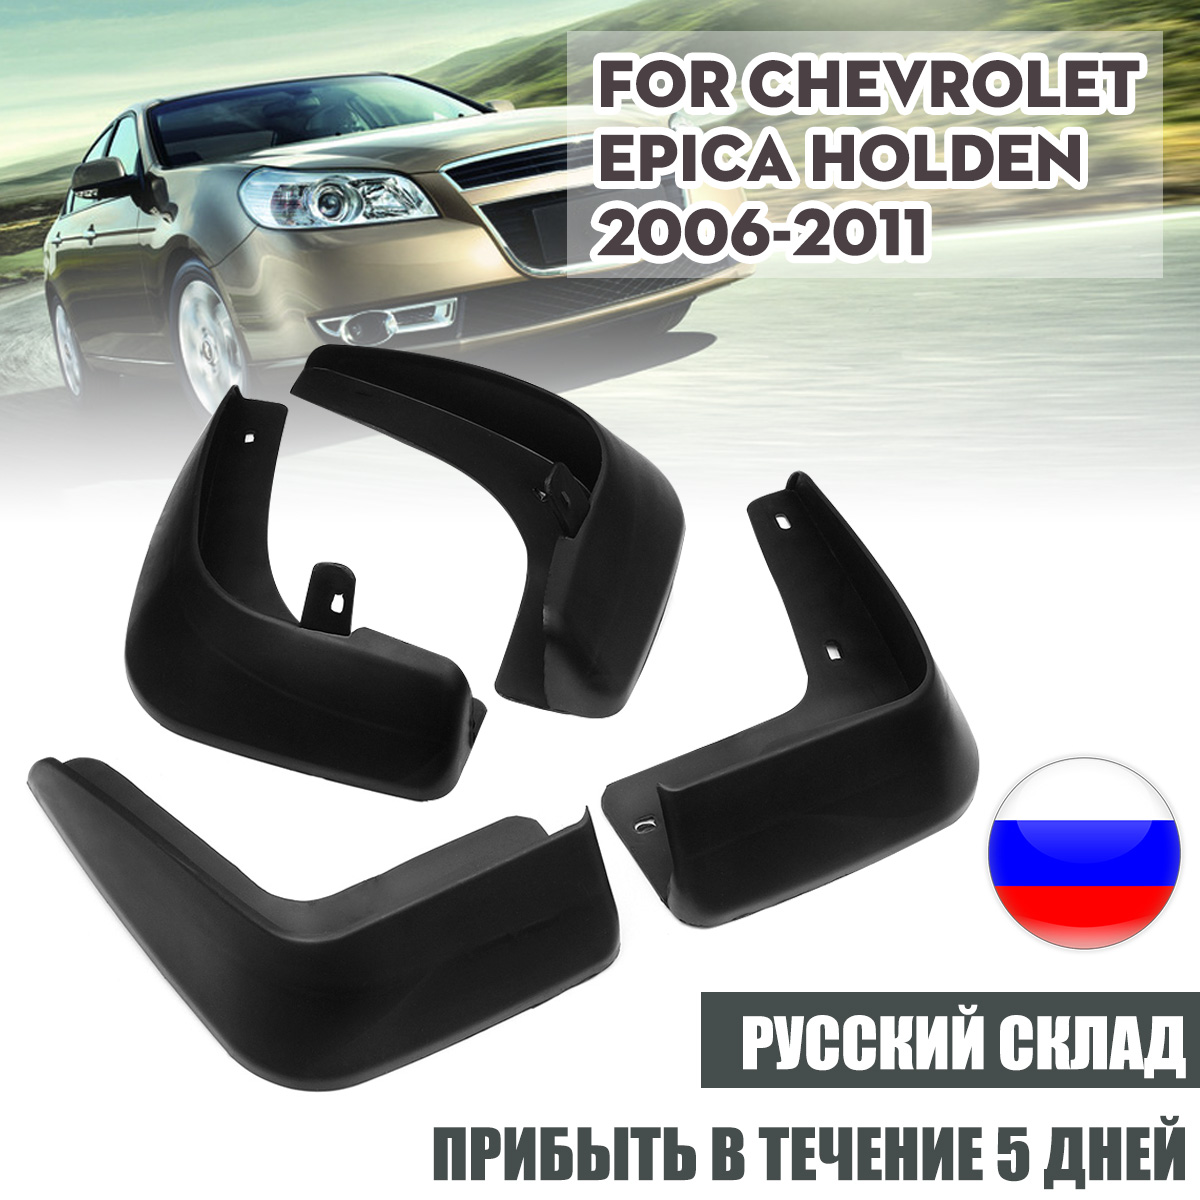 Car Front Rear Mud Flaps for Chevrolet for Holden/Epica 2006 2011 for Fender Mudflaps Mudguards Splash Guards-in Mudguards from Automobiles & Motorcycles